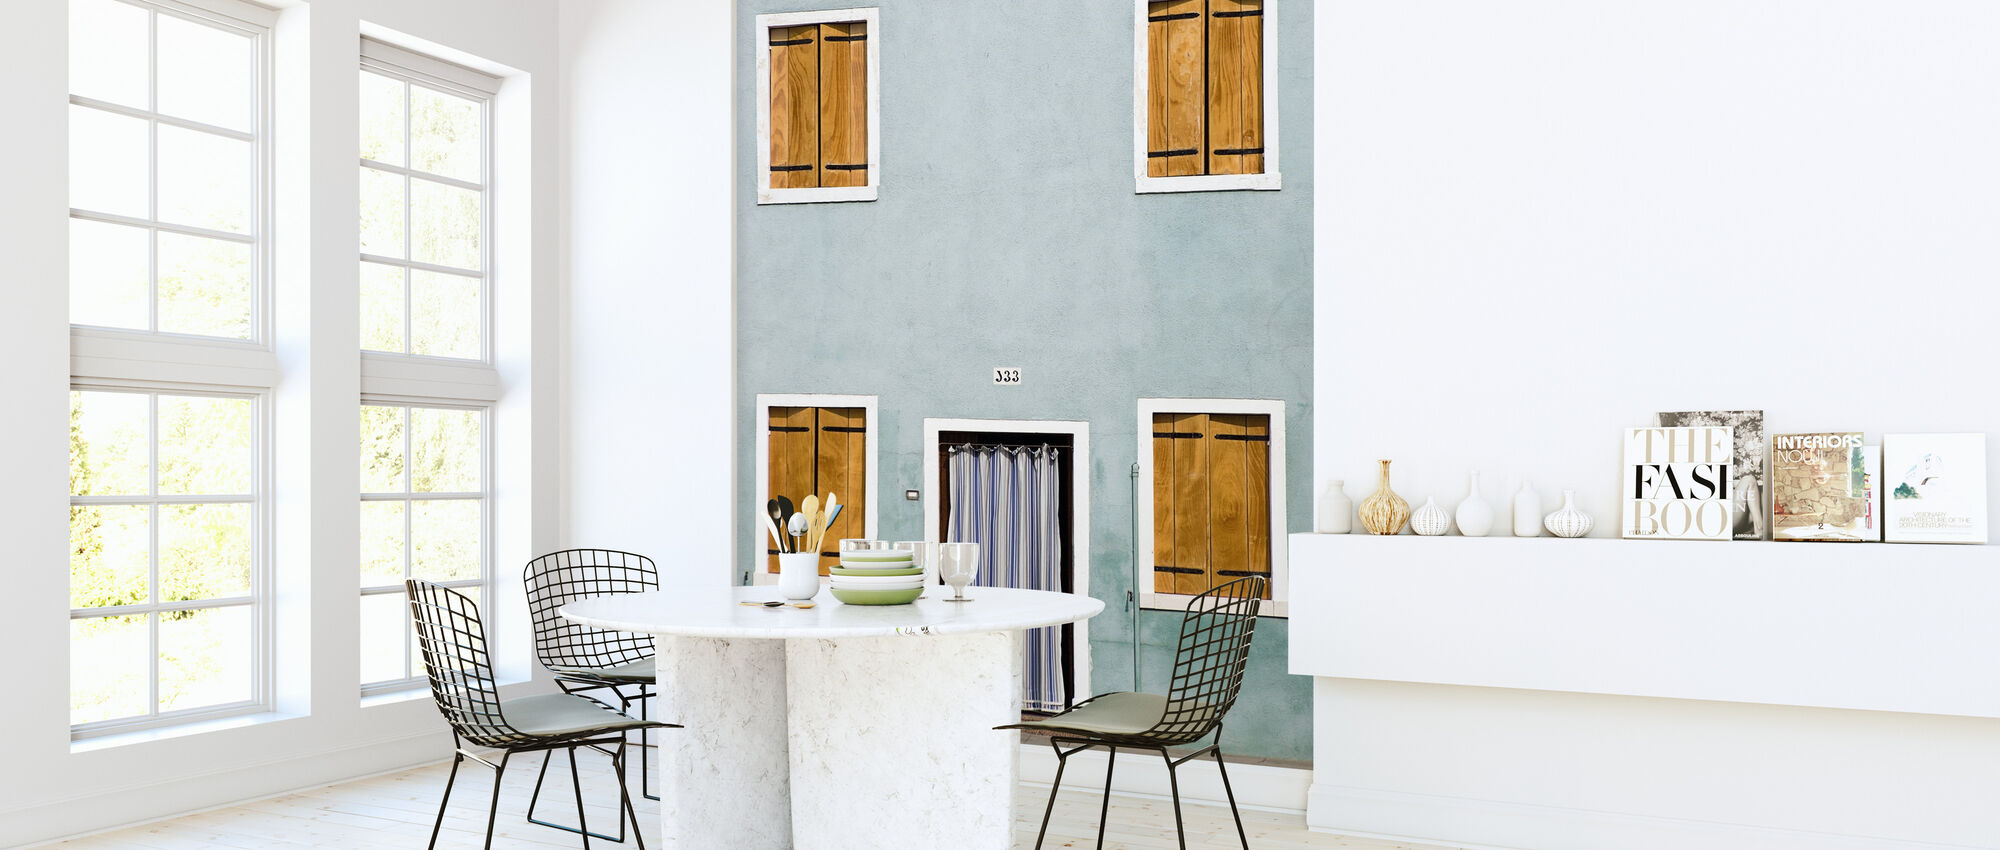 Facade with Closed Shutters - Wallpaper - Kitchen